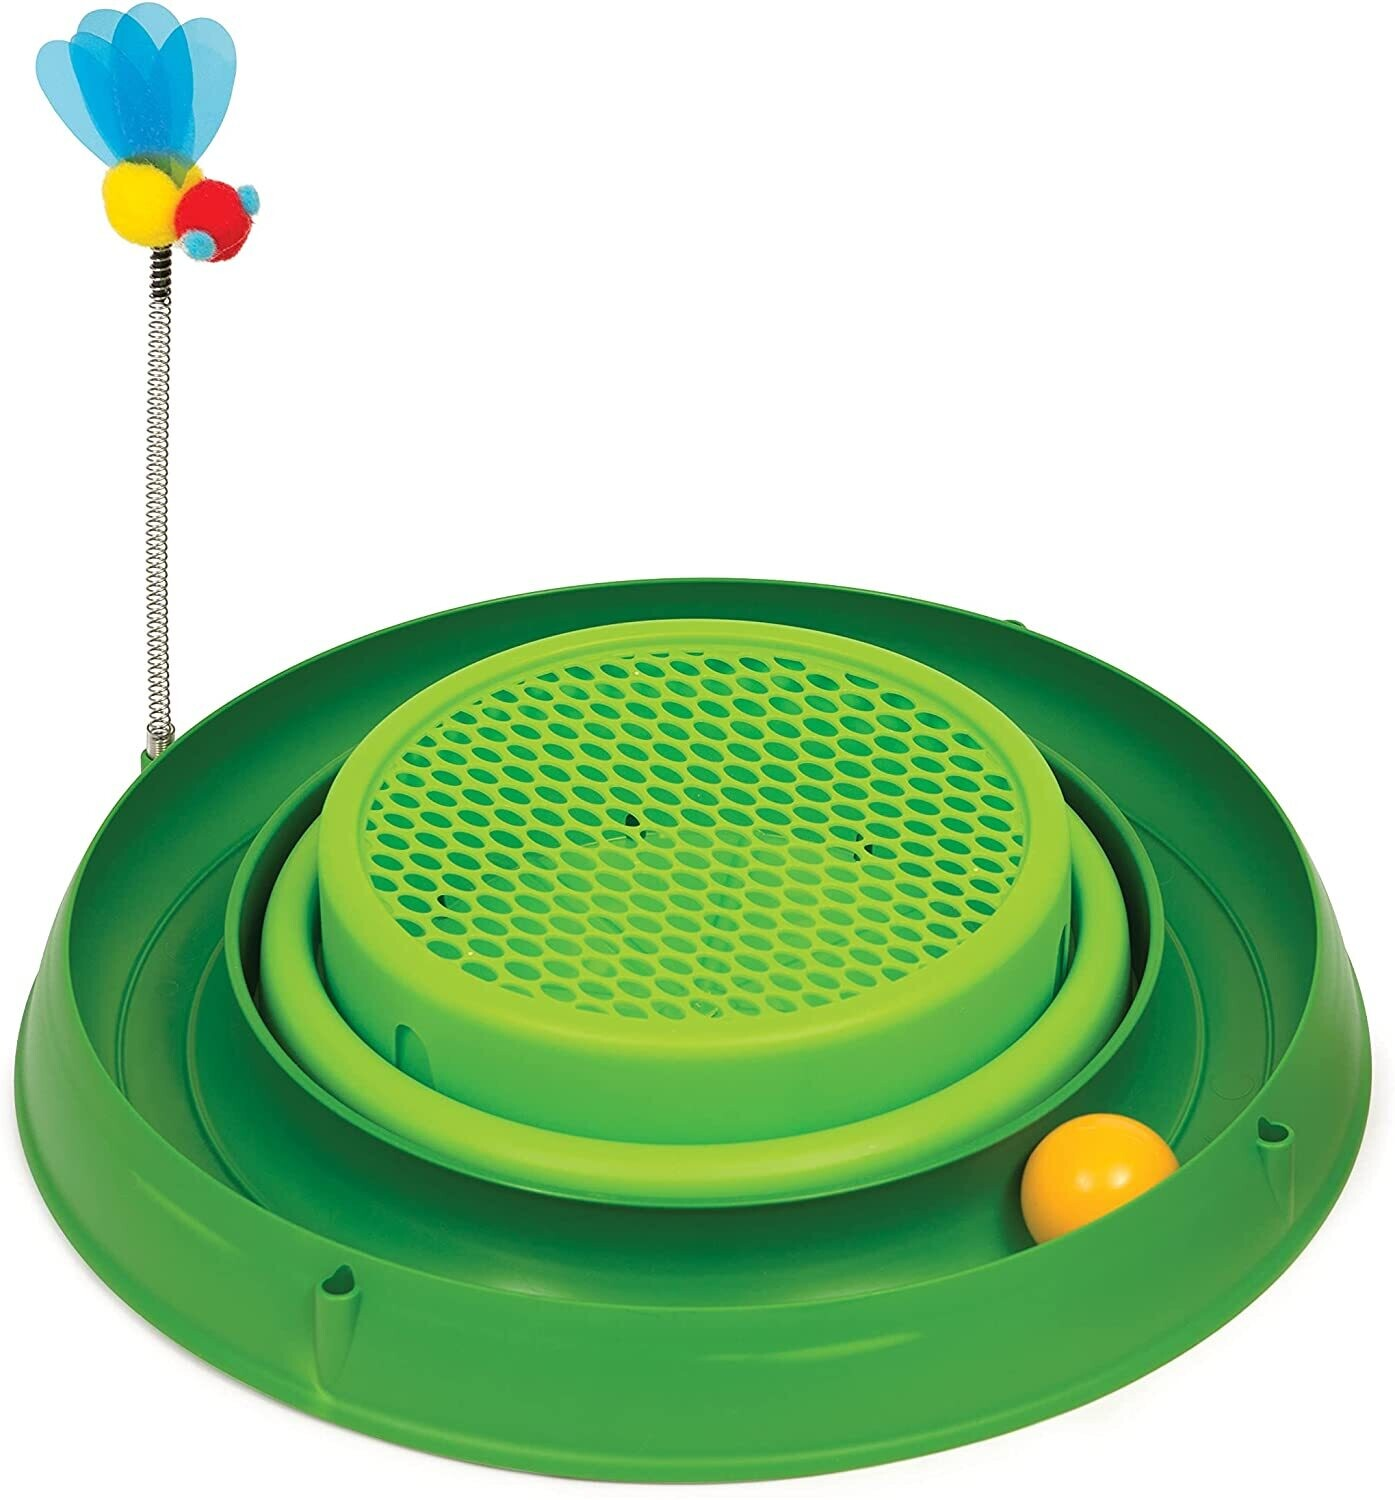 Catit Play 3 in 1 Circuit Ball Toy with Grass